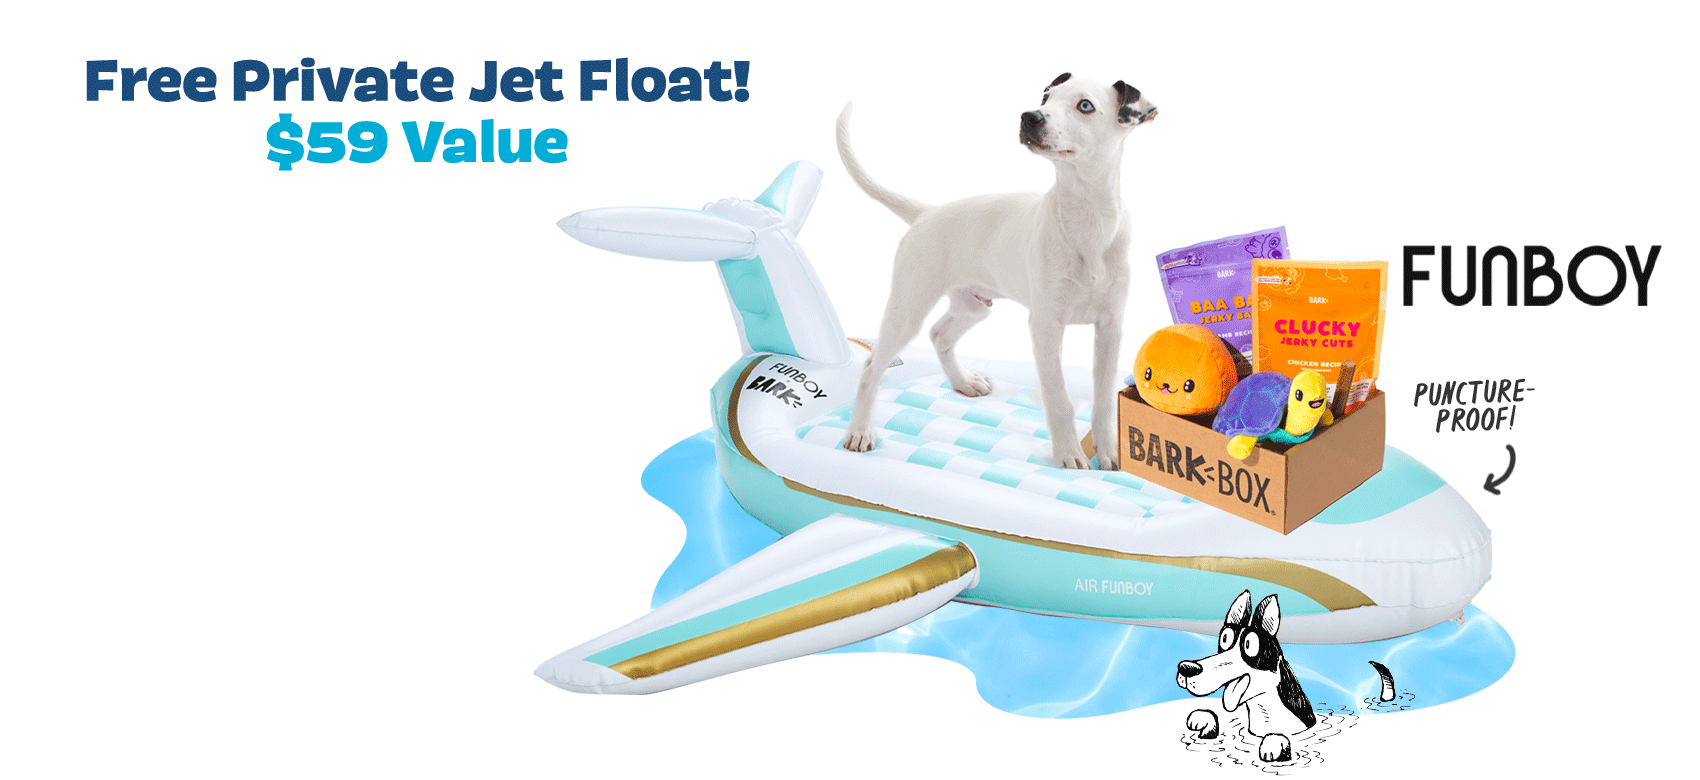 BarkBox Coupon Code – Free FUNBOY Pool Float!